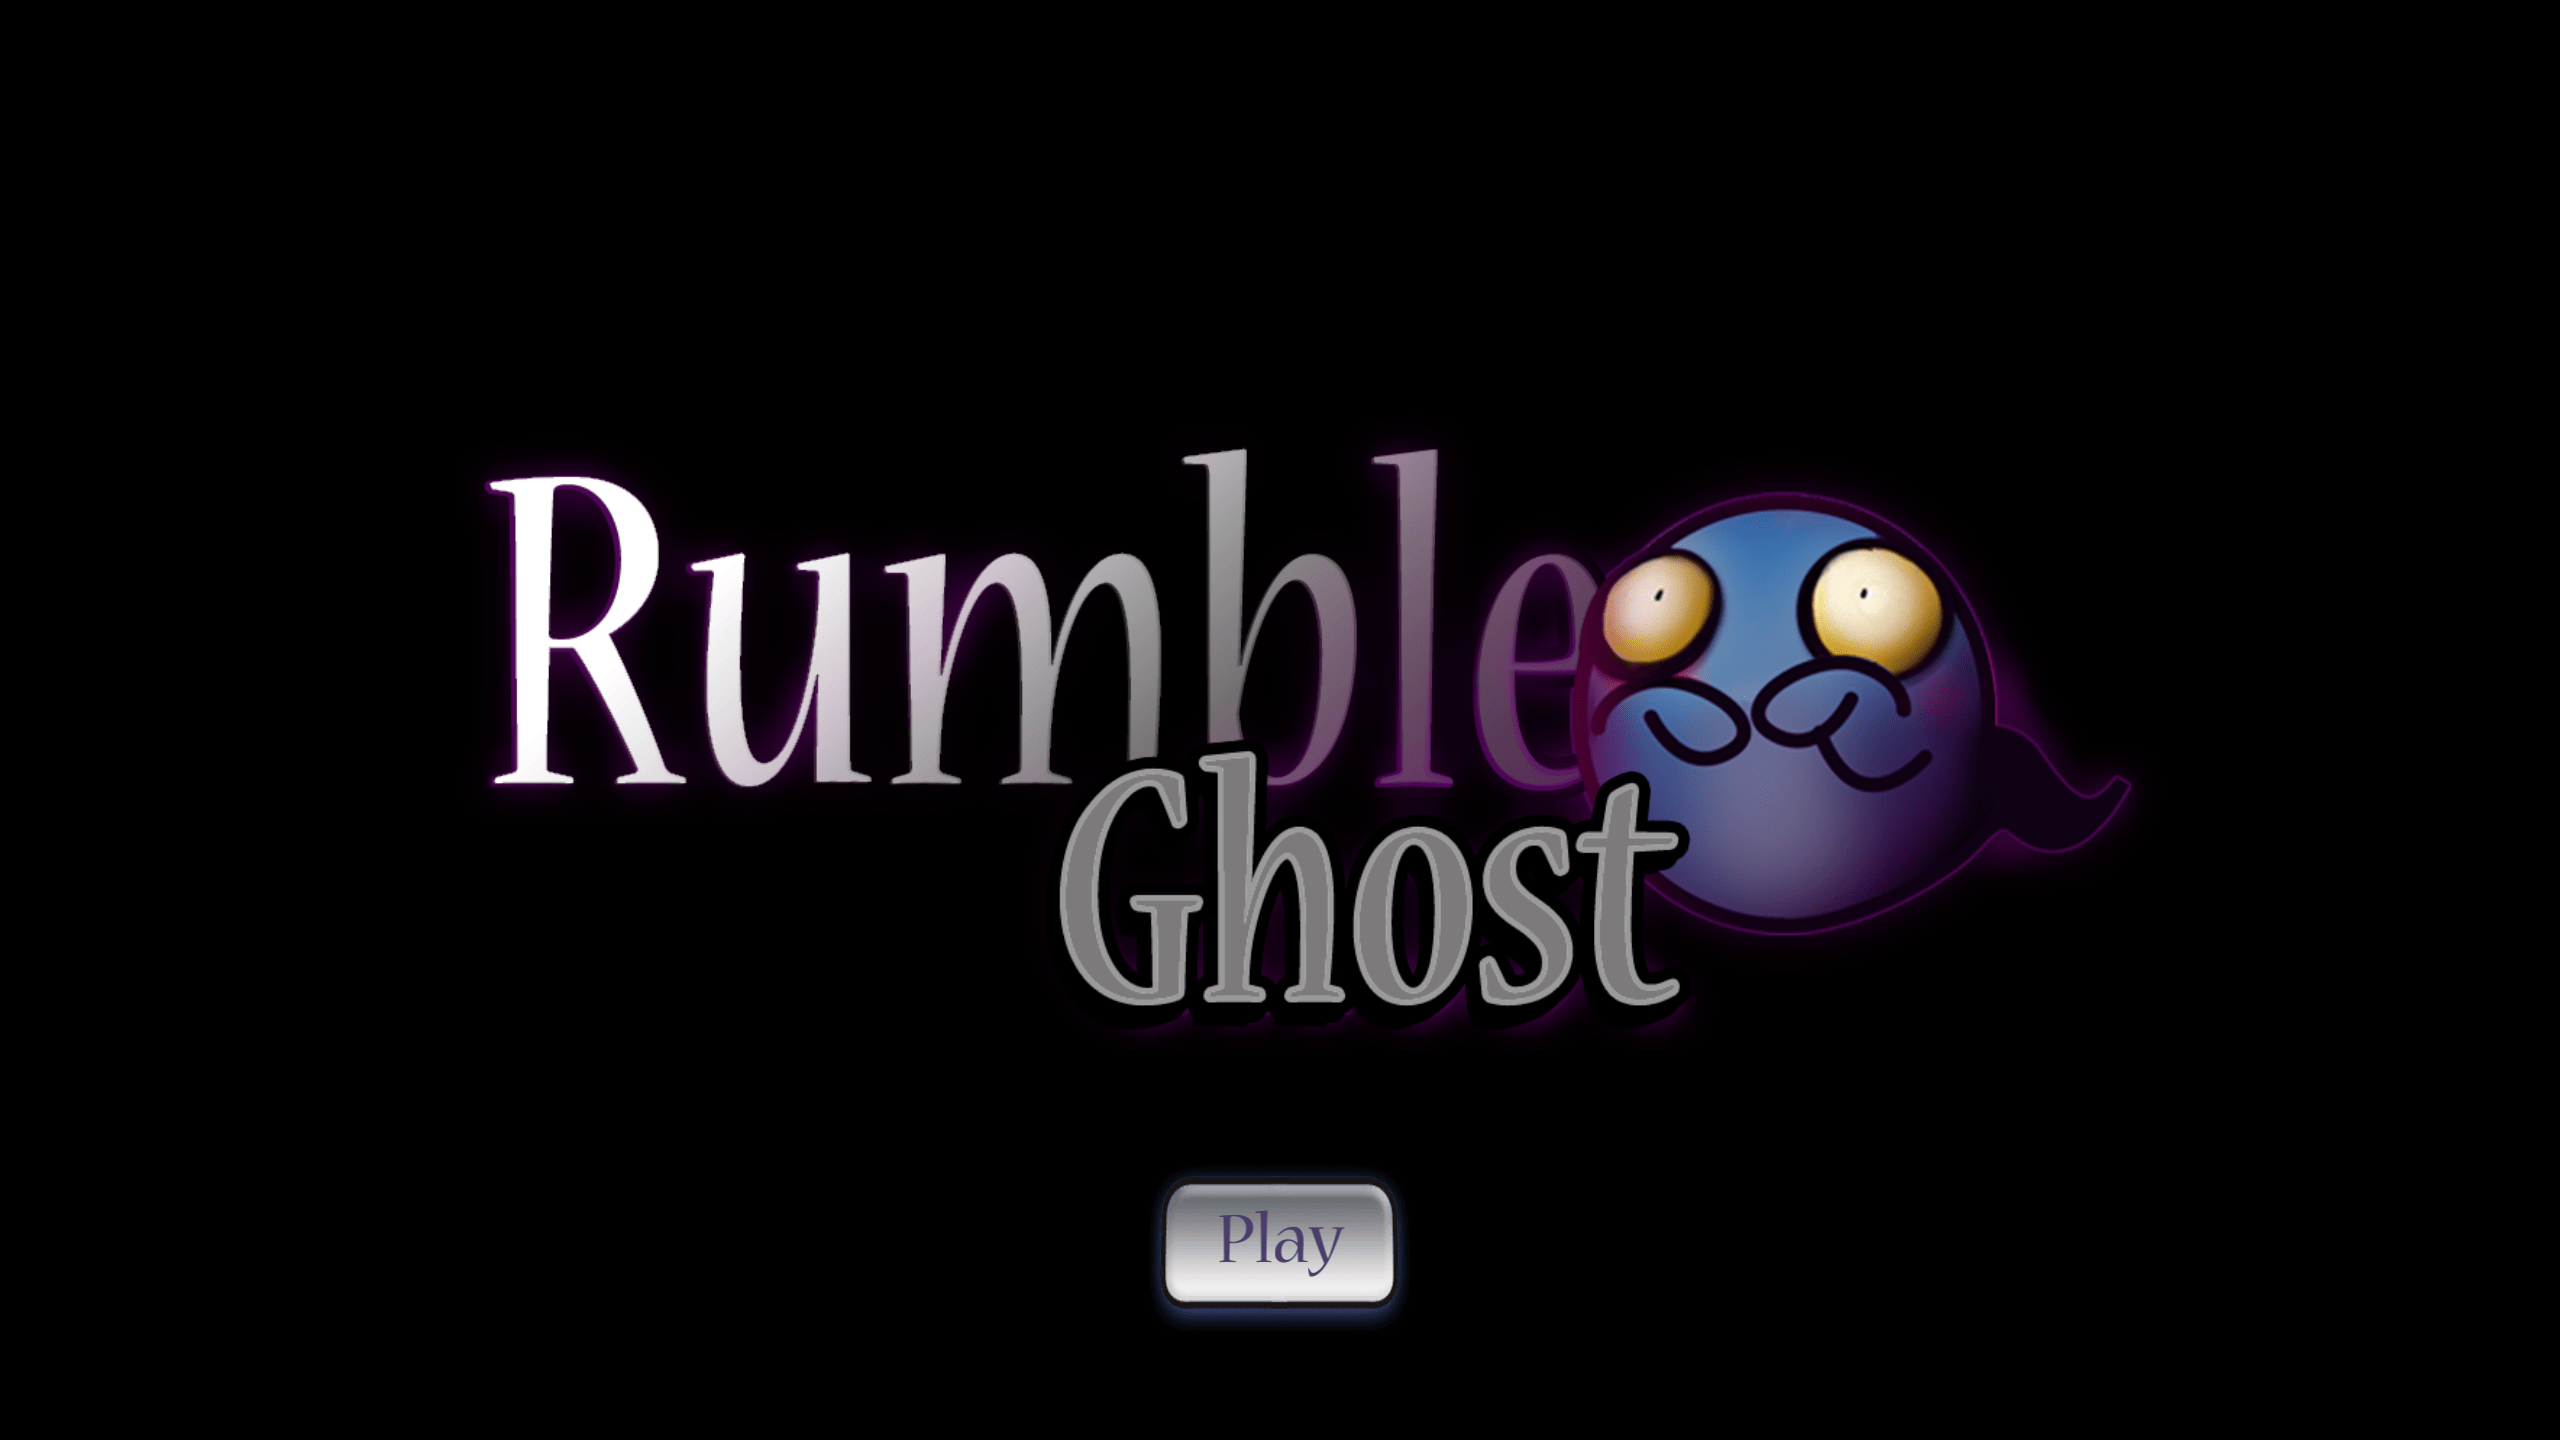 Rumble Ghost Frame 1